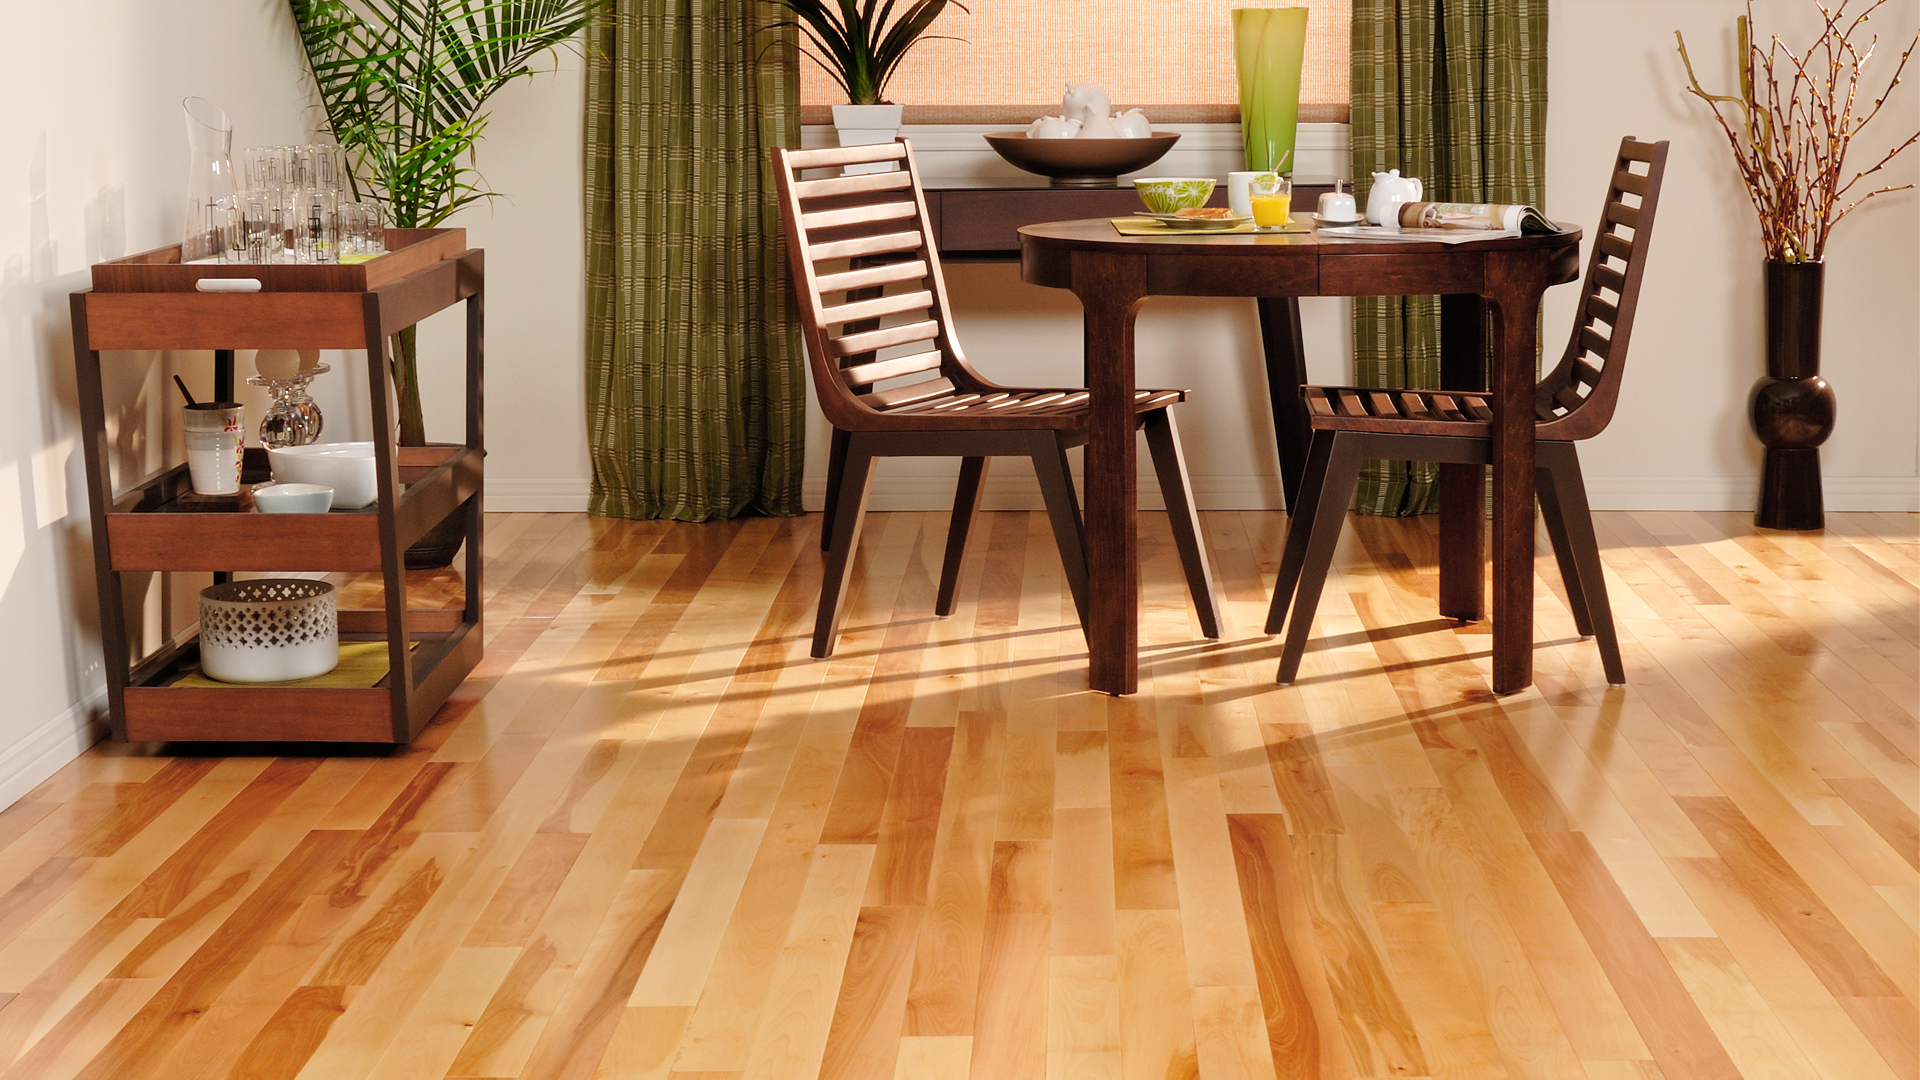 Yellow birch natural | Dubeau hardwood floors | Dining room decor